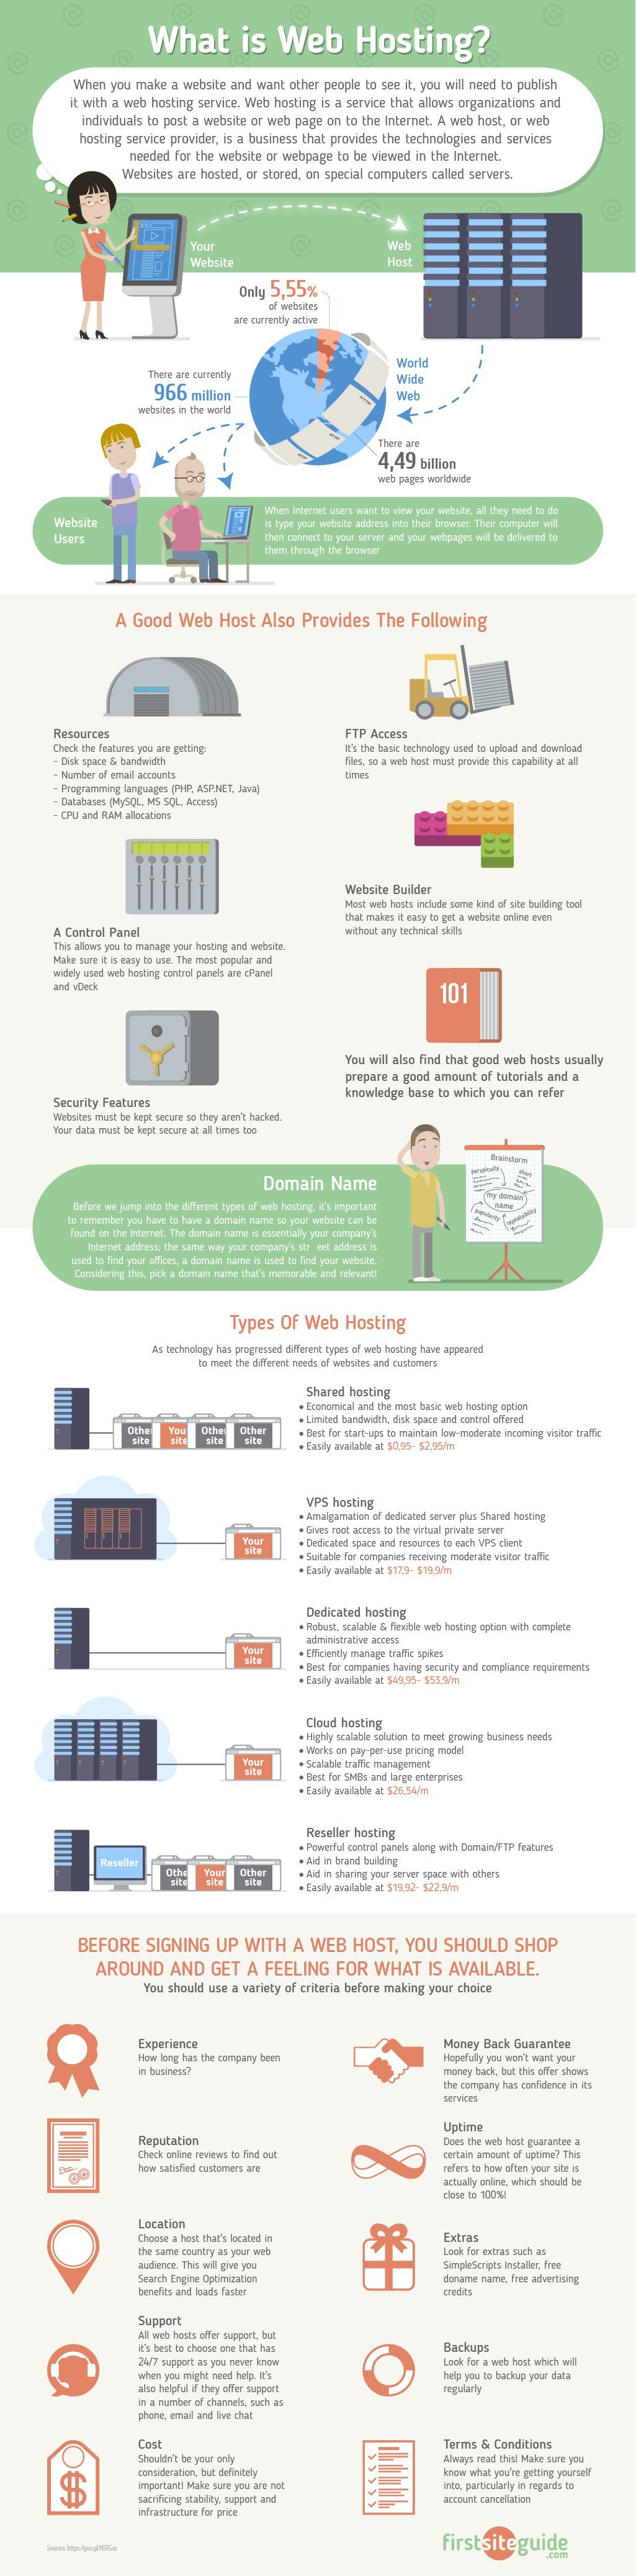 What is Web Hosting - Infographic